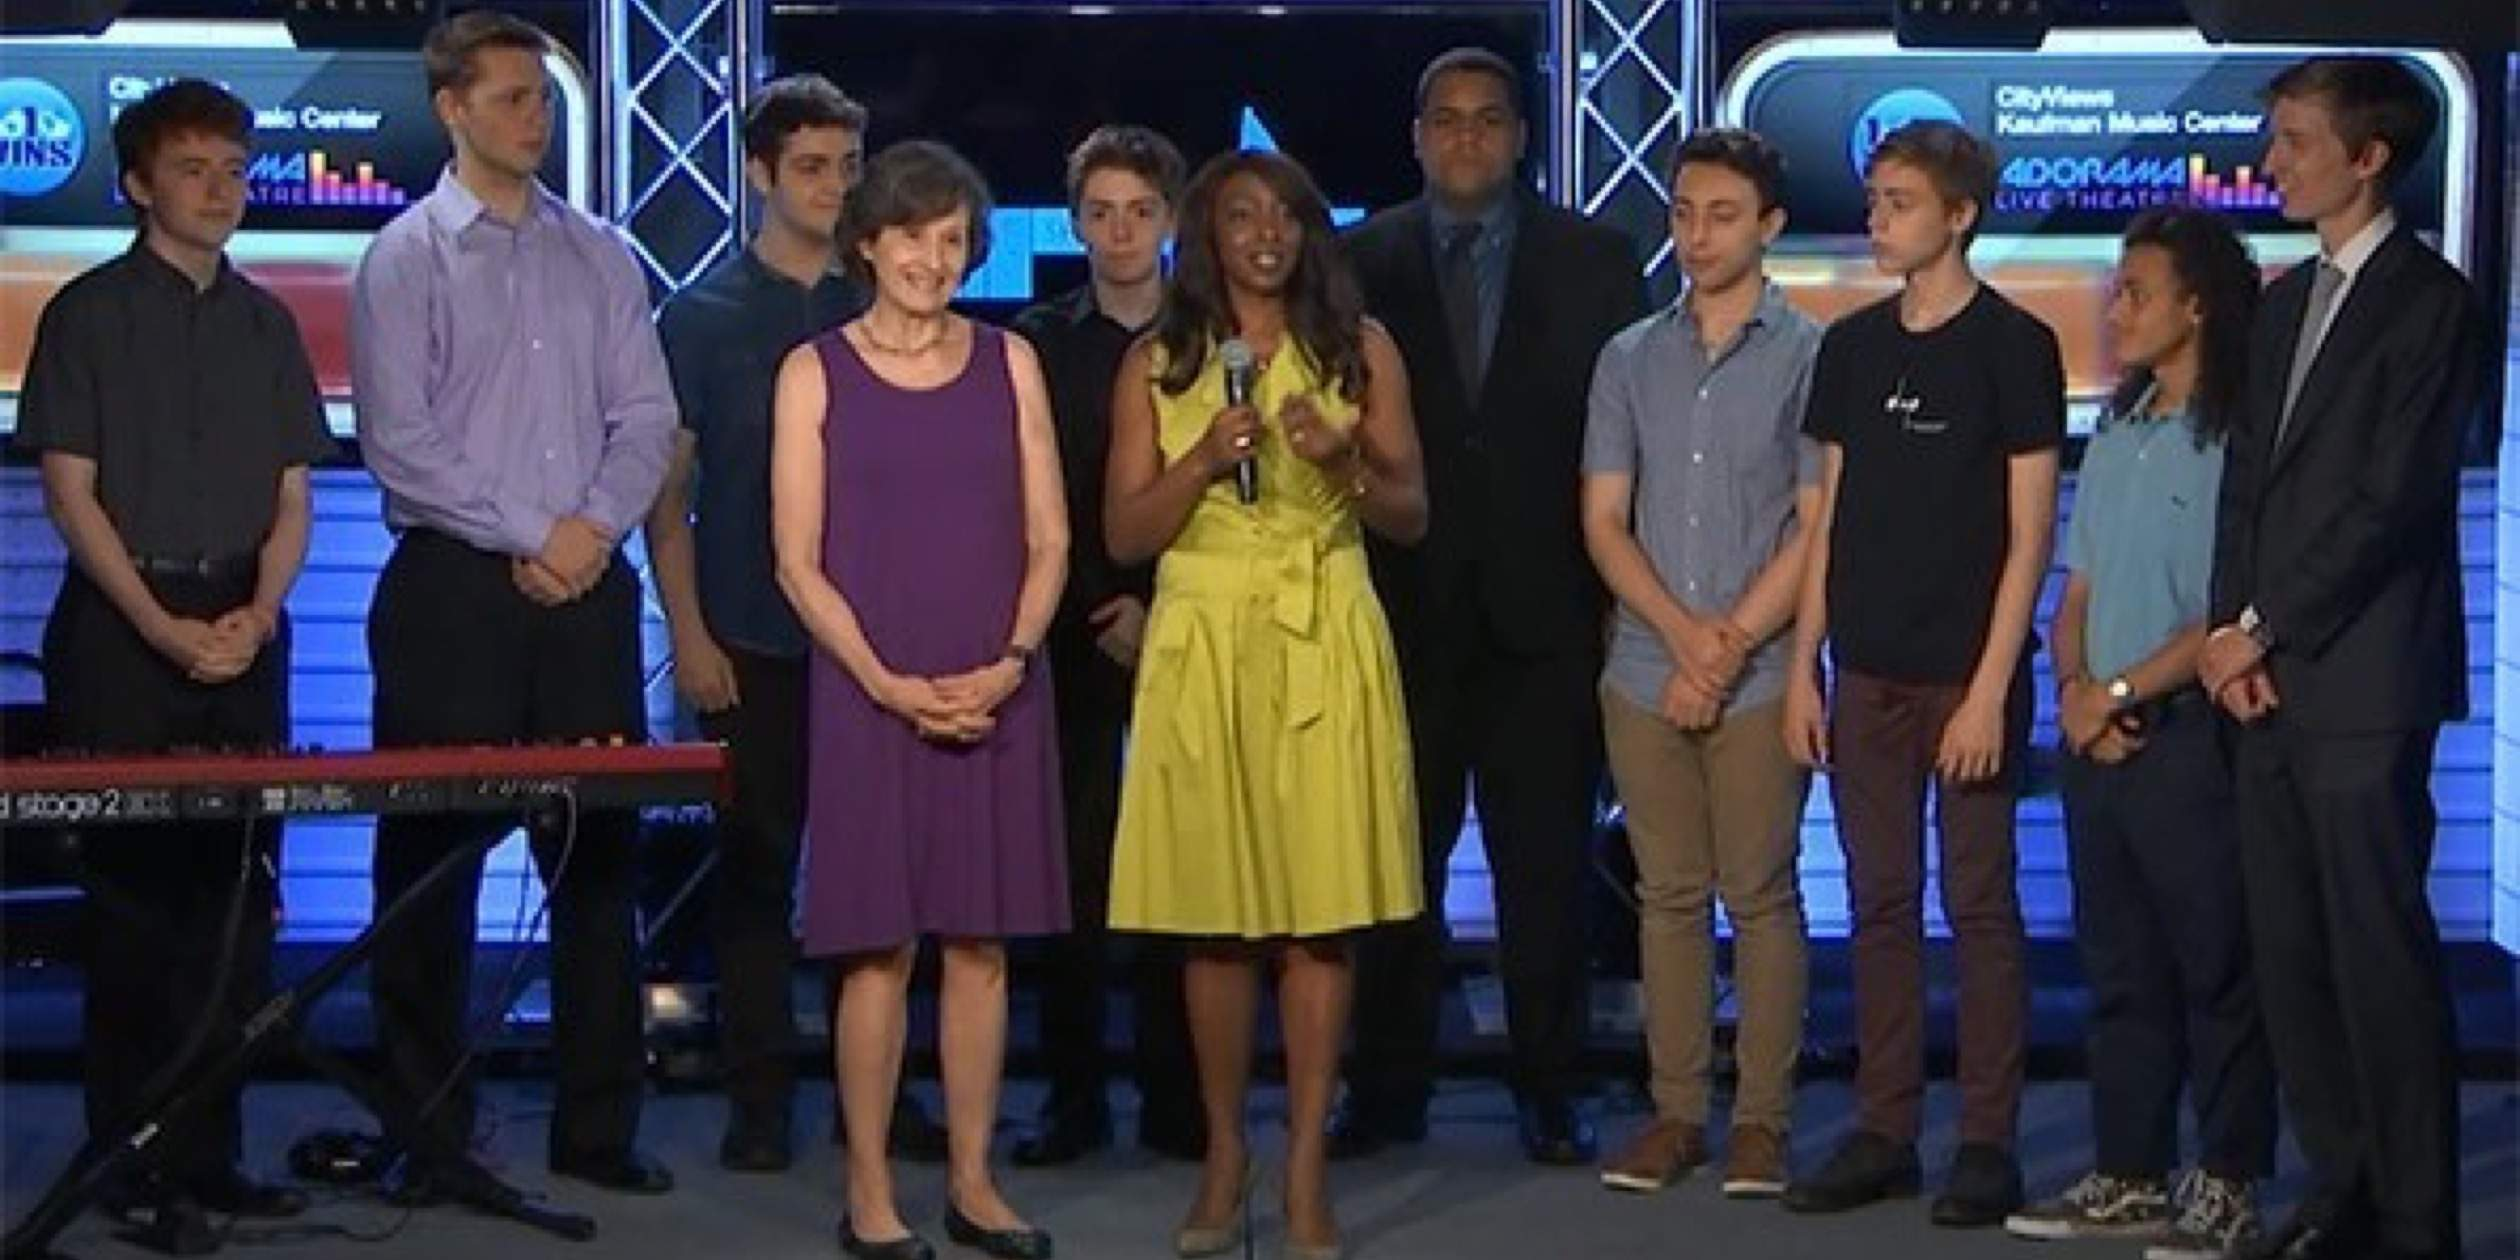 Watch SMS High School Students on CBS New York